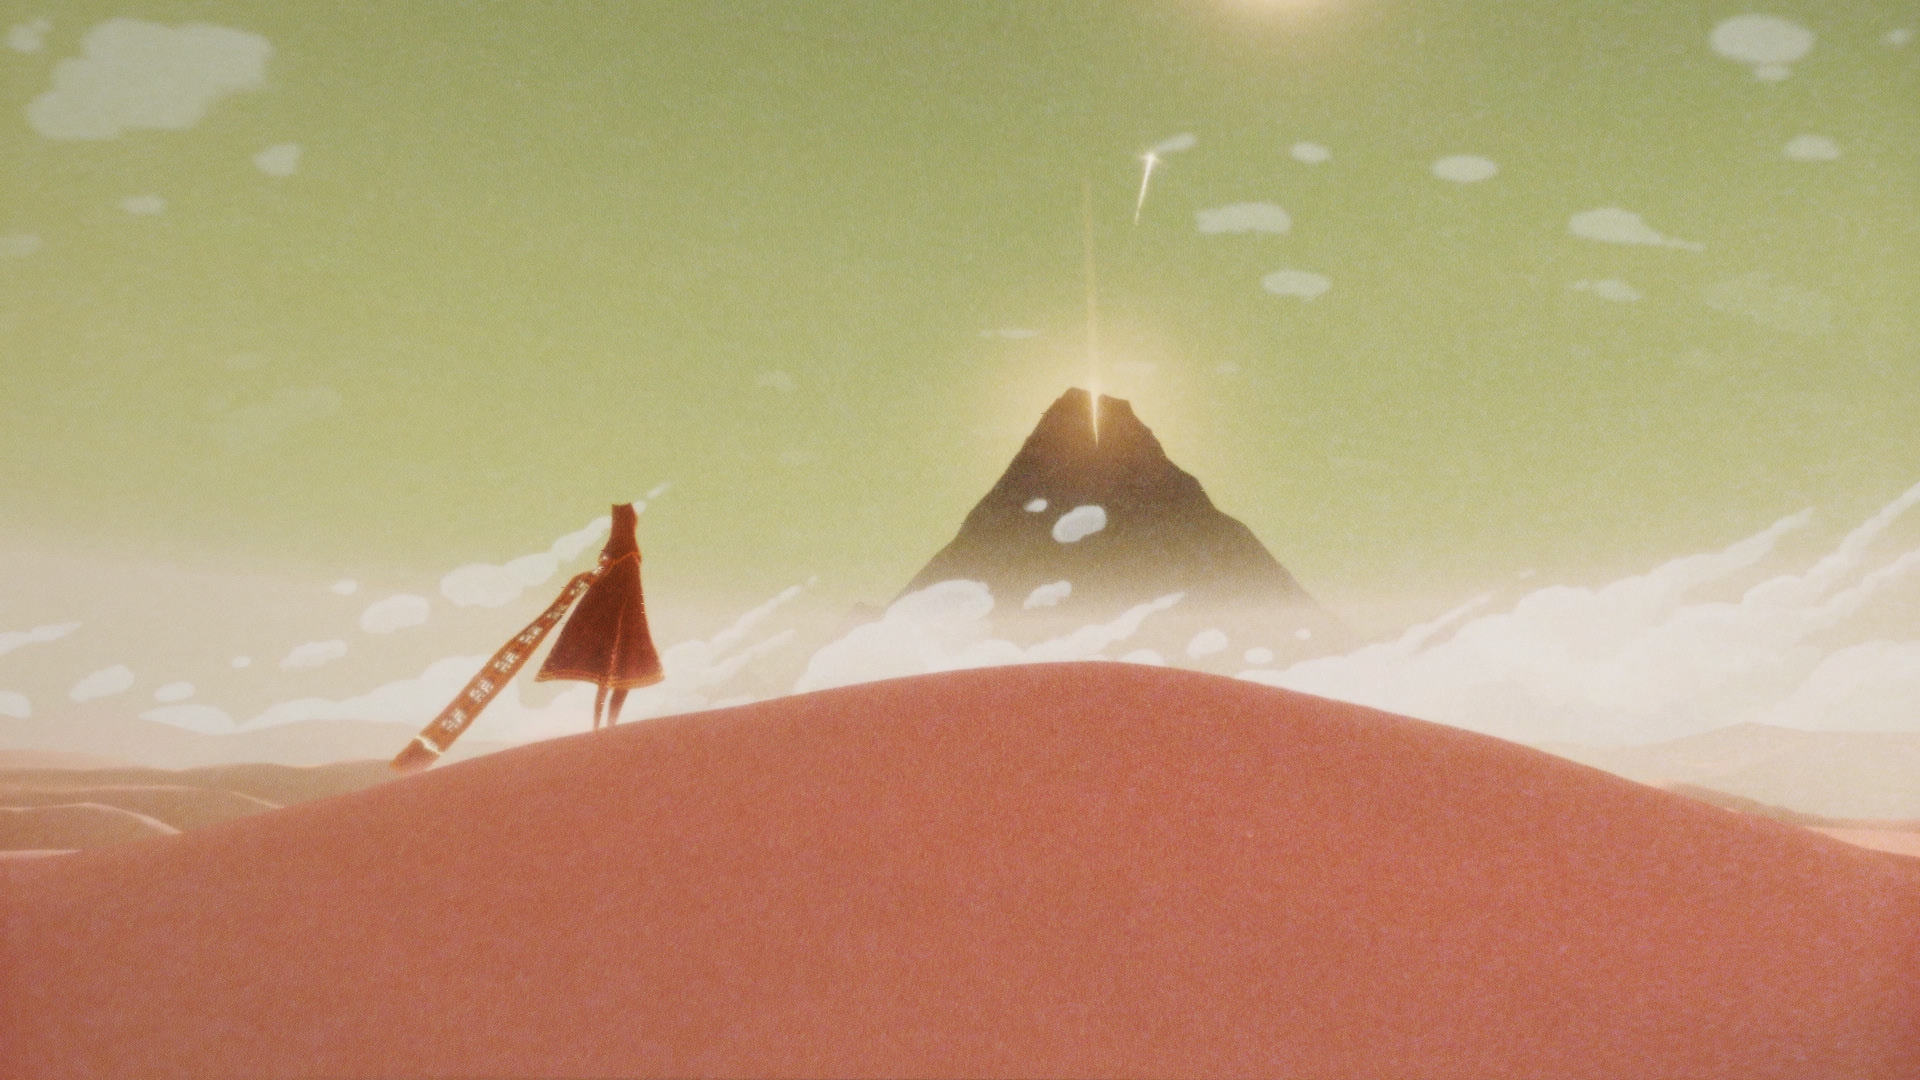 Video game character in the game Journey stands on a pink sand dune, looking at a glowing mountain top in the distance.